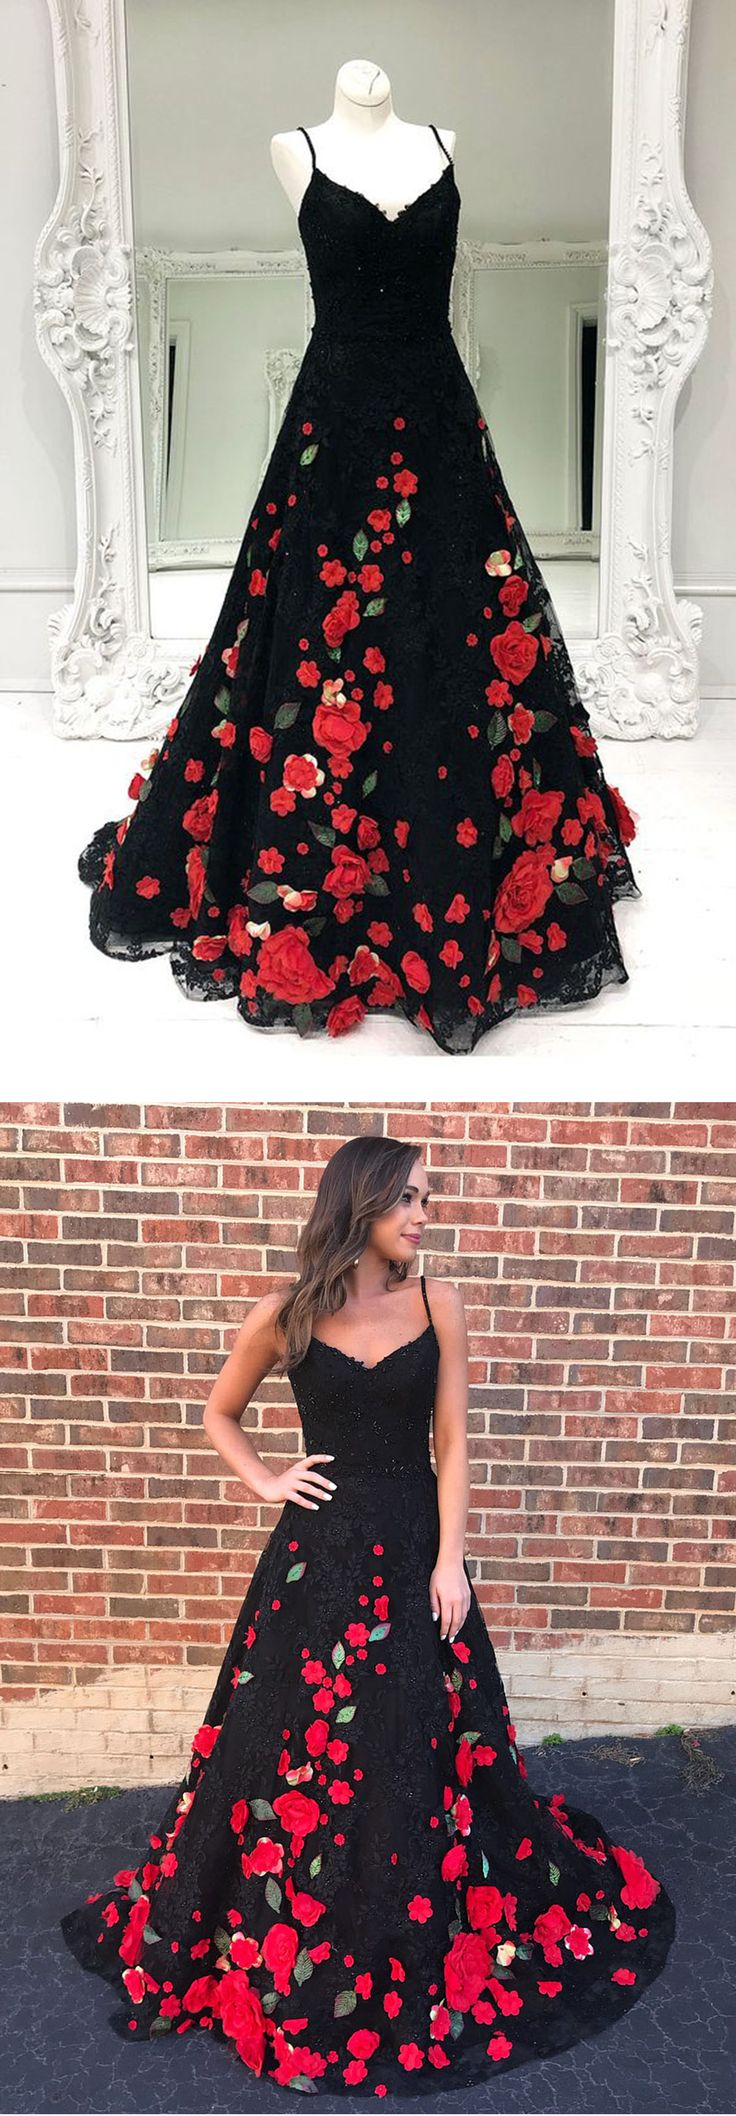 Gorgeous black flower lace long customize prom dress, black evening dress #prom #dress #promdress